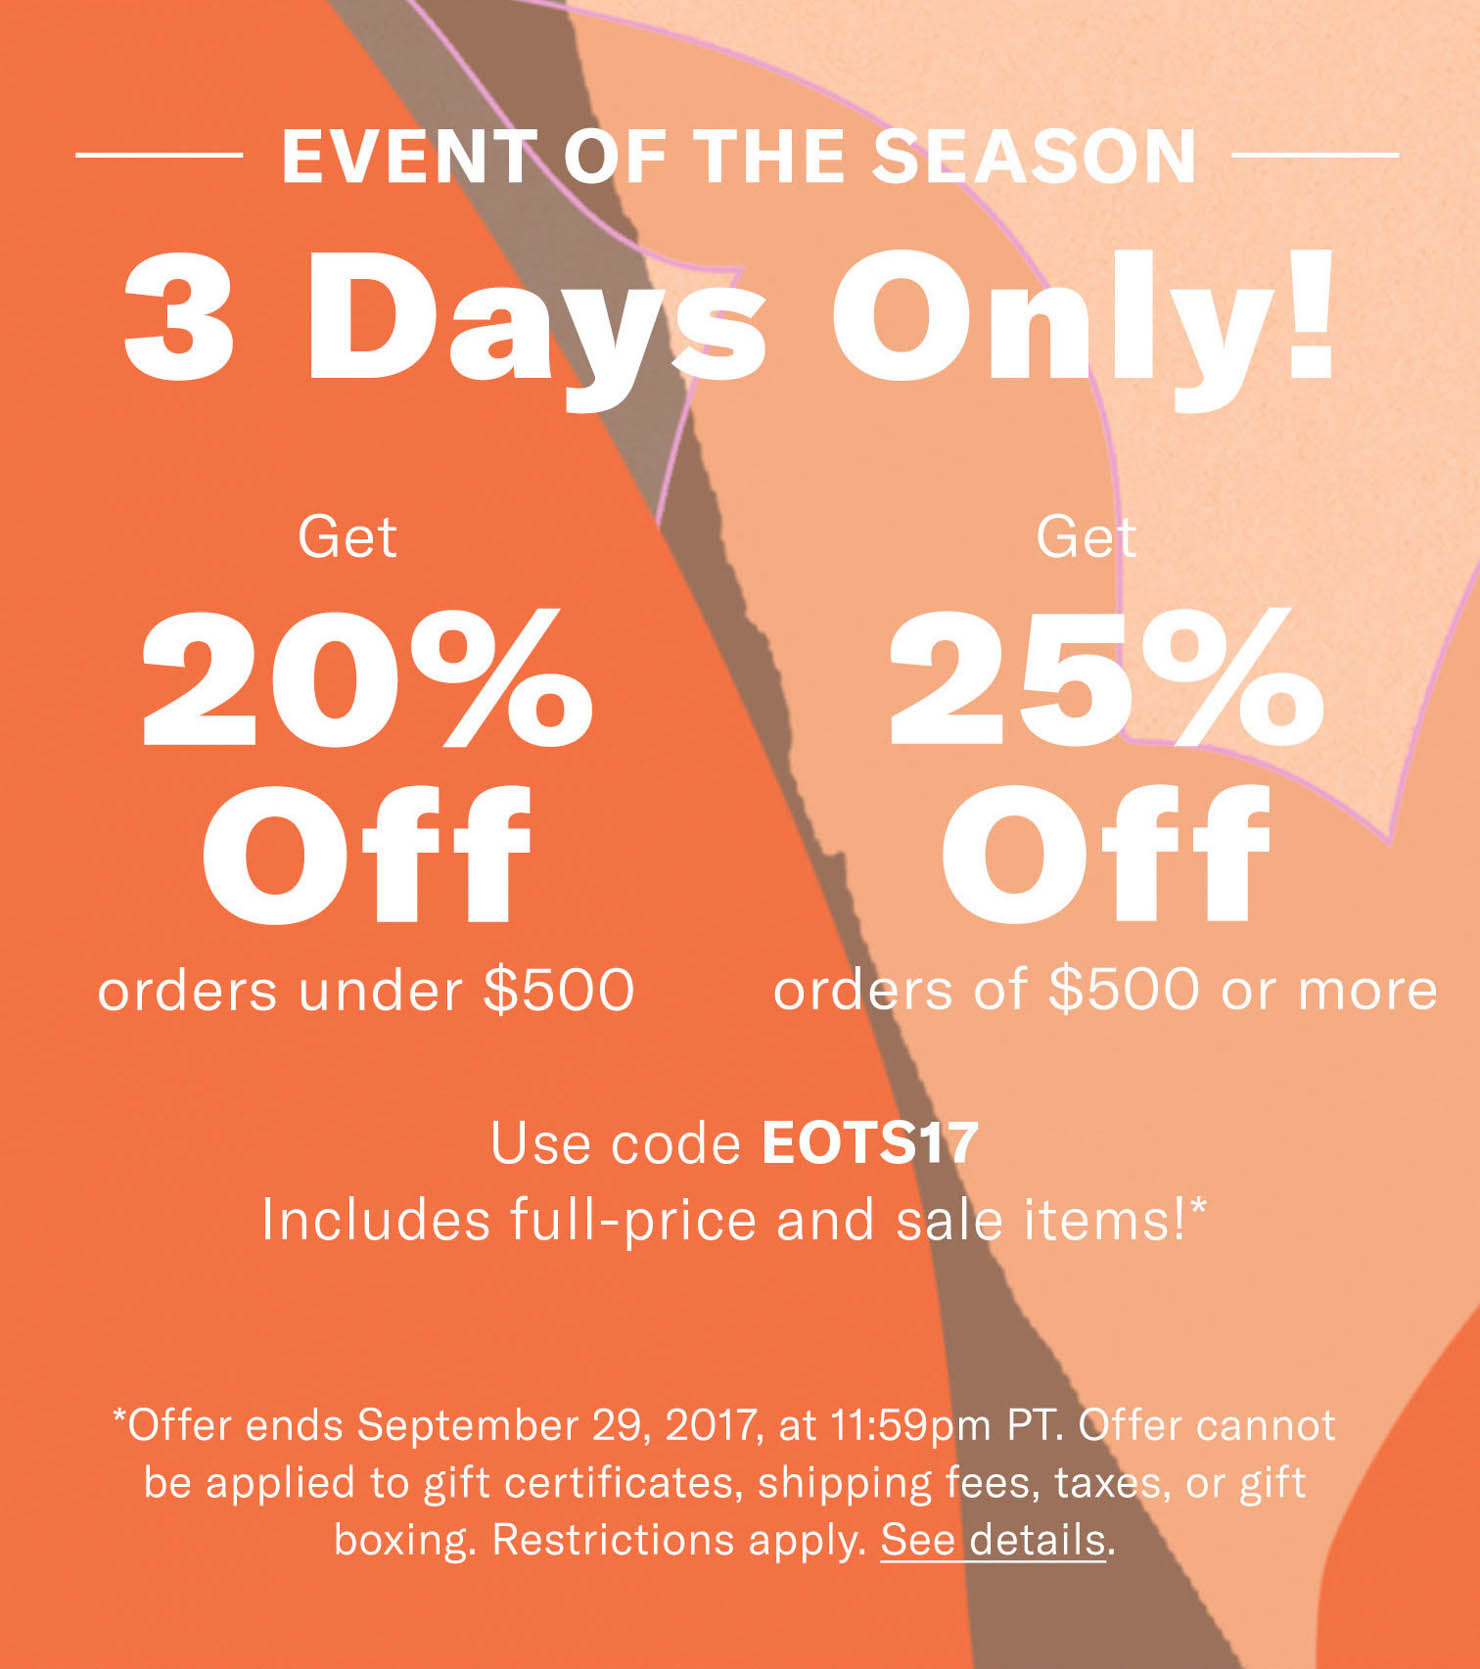 Shopbop fall sale 2017, fall trends 2017, fall wardrobe essentials, fall stock up